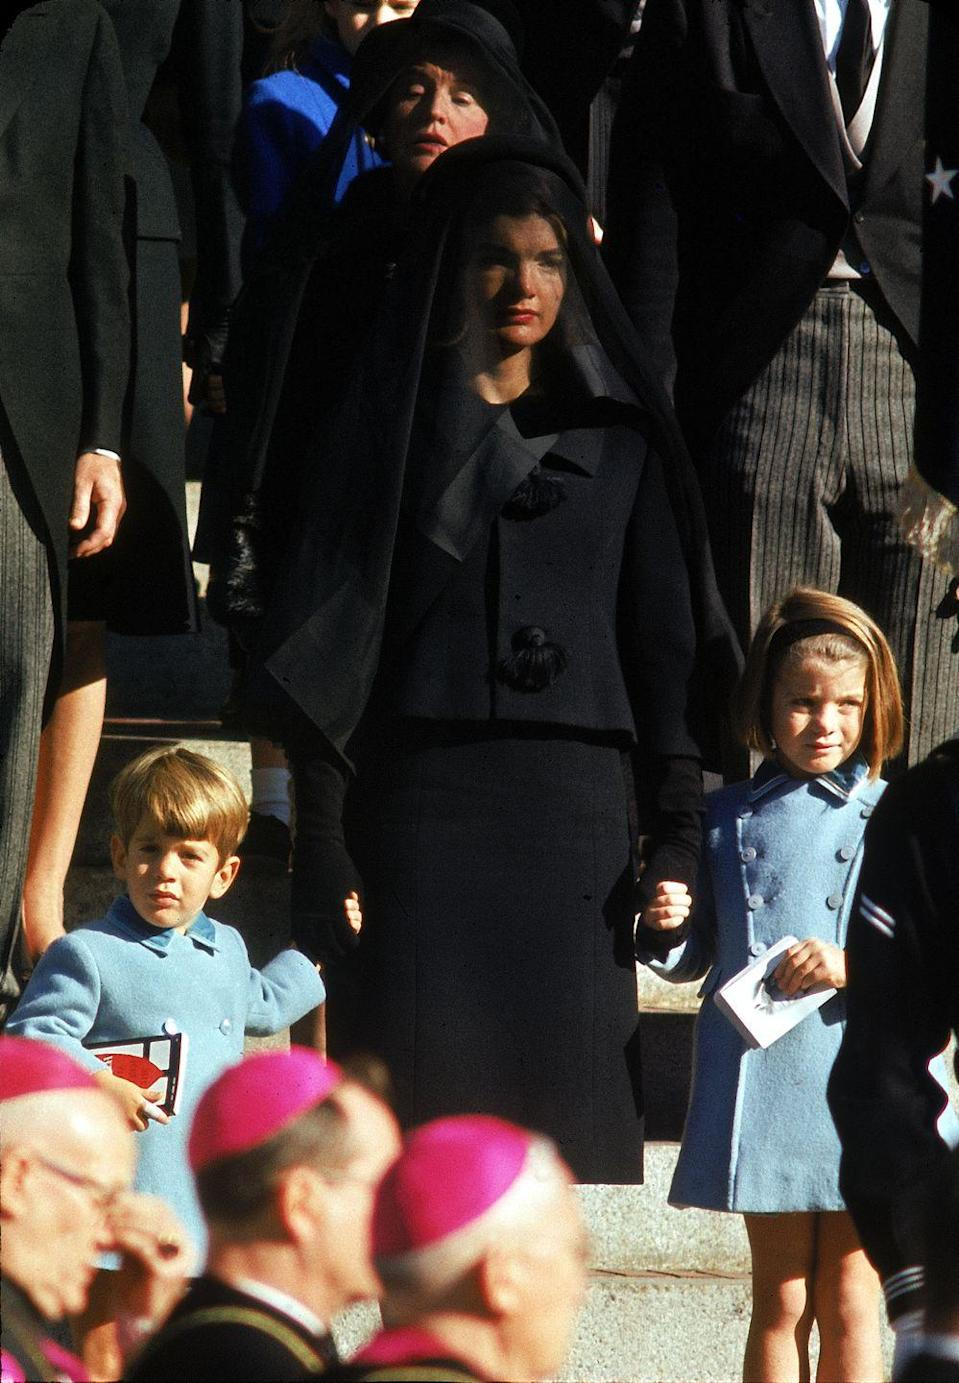 <p>Jacqueline Kennedy holds the hands of her children, Caroline and JFK Jr., at the funeral of her husband, President Kennedy. </p>